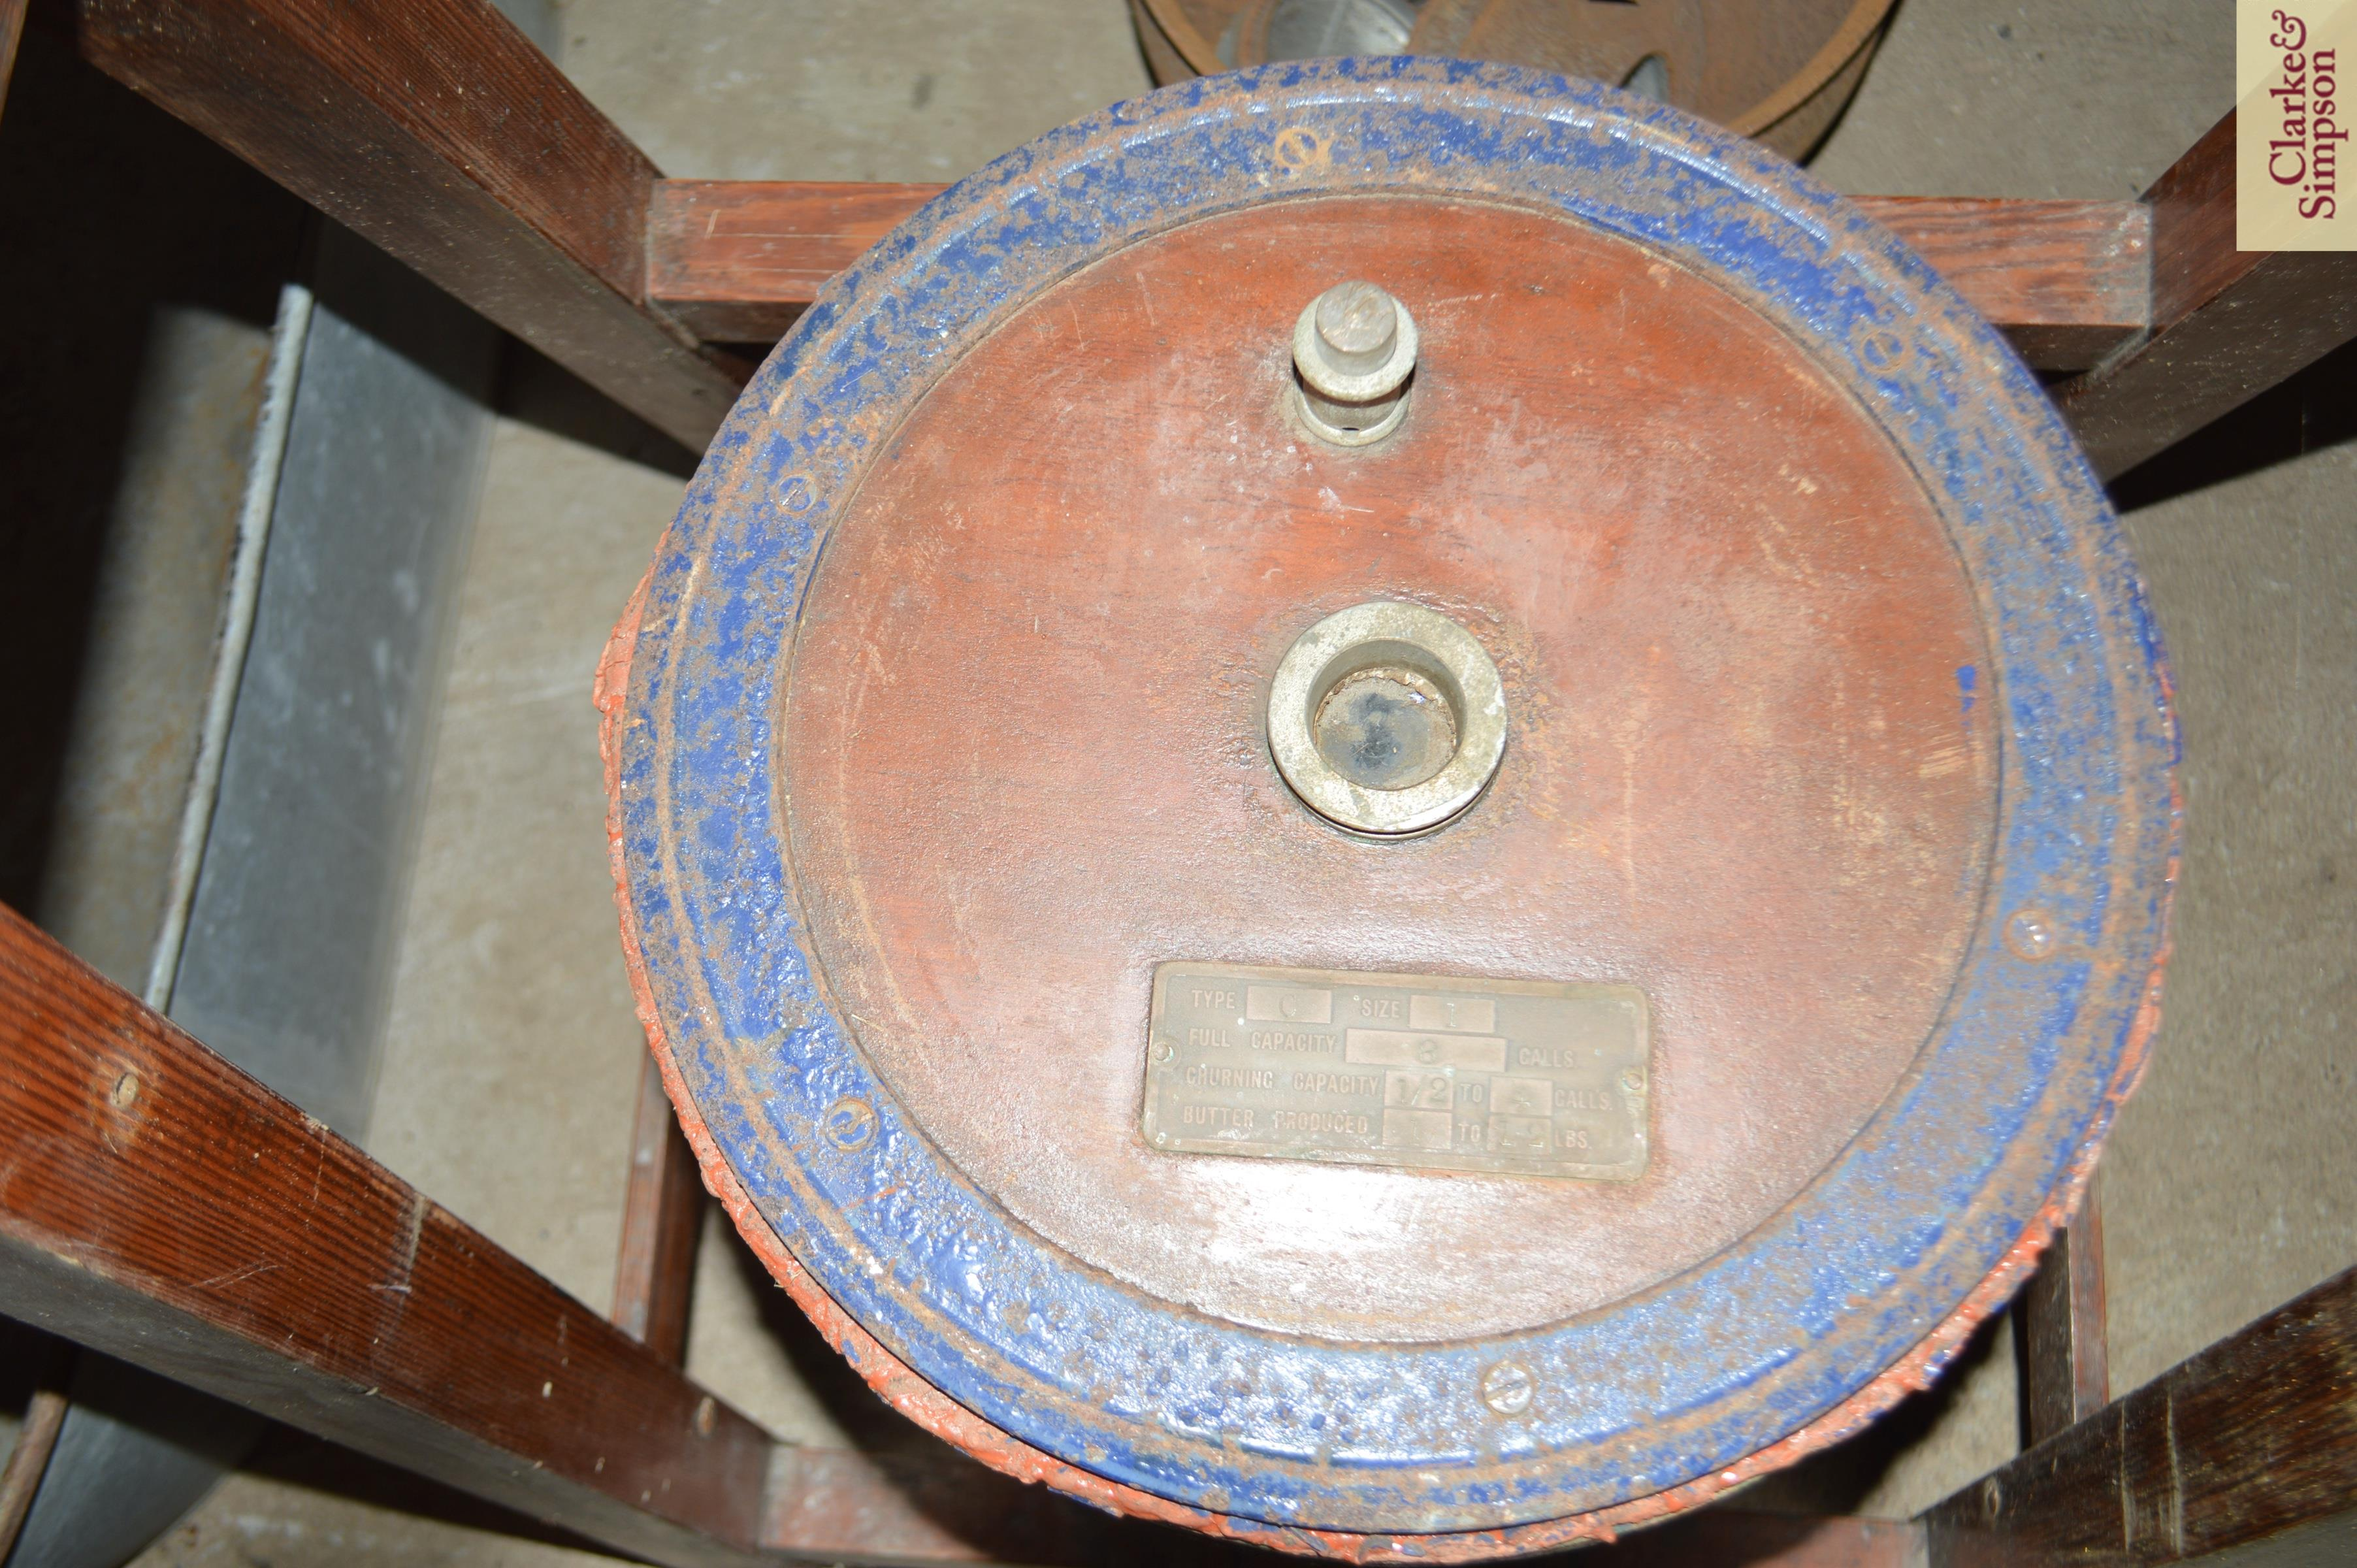 An old butter churn with stand and cream separator - Image 6 of 13